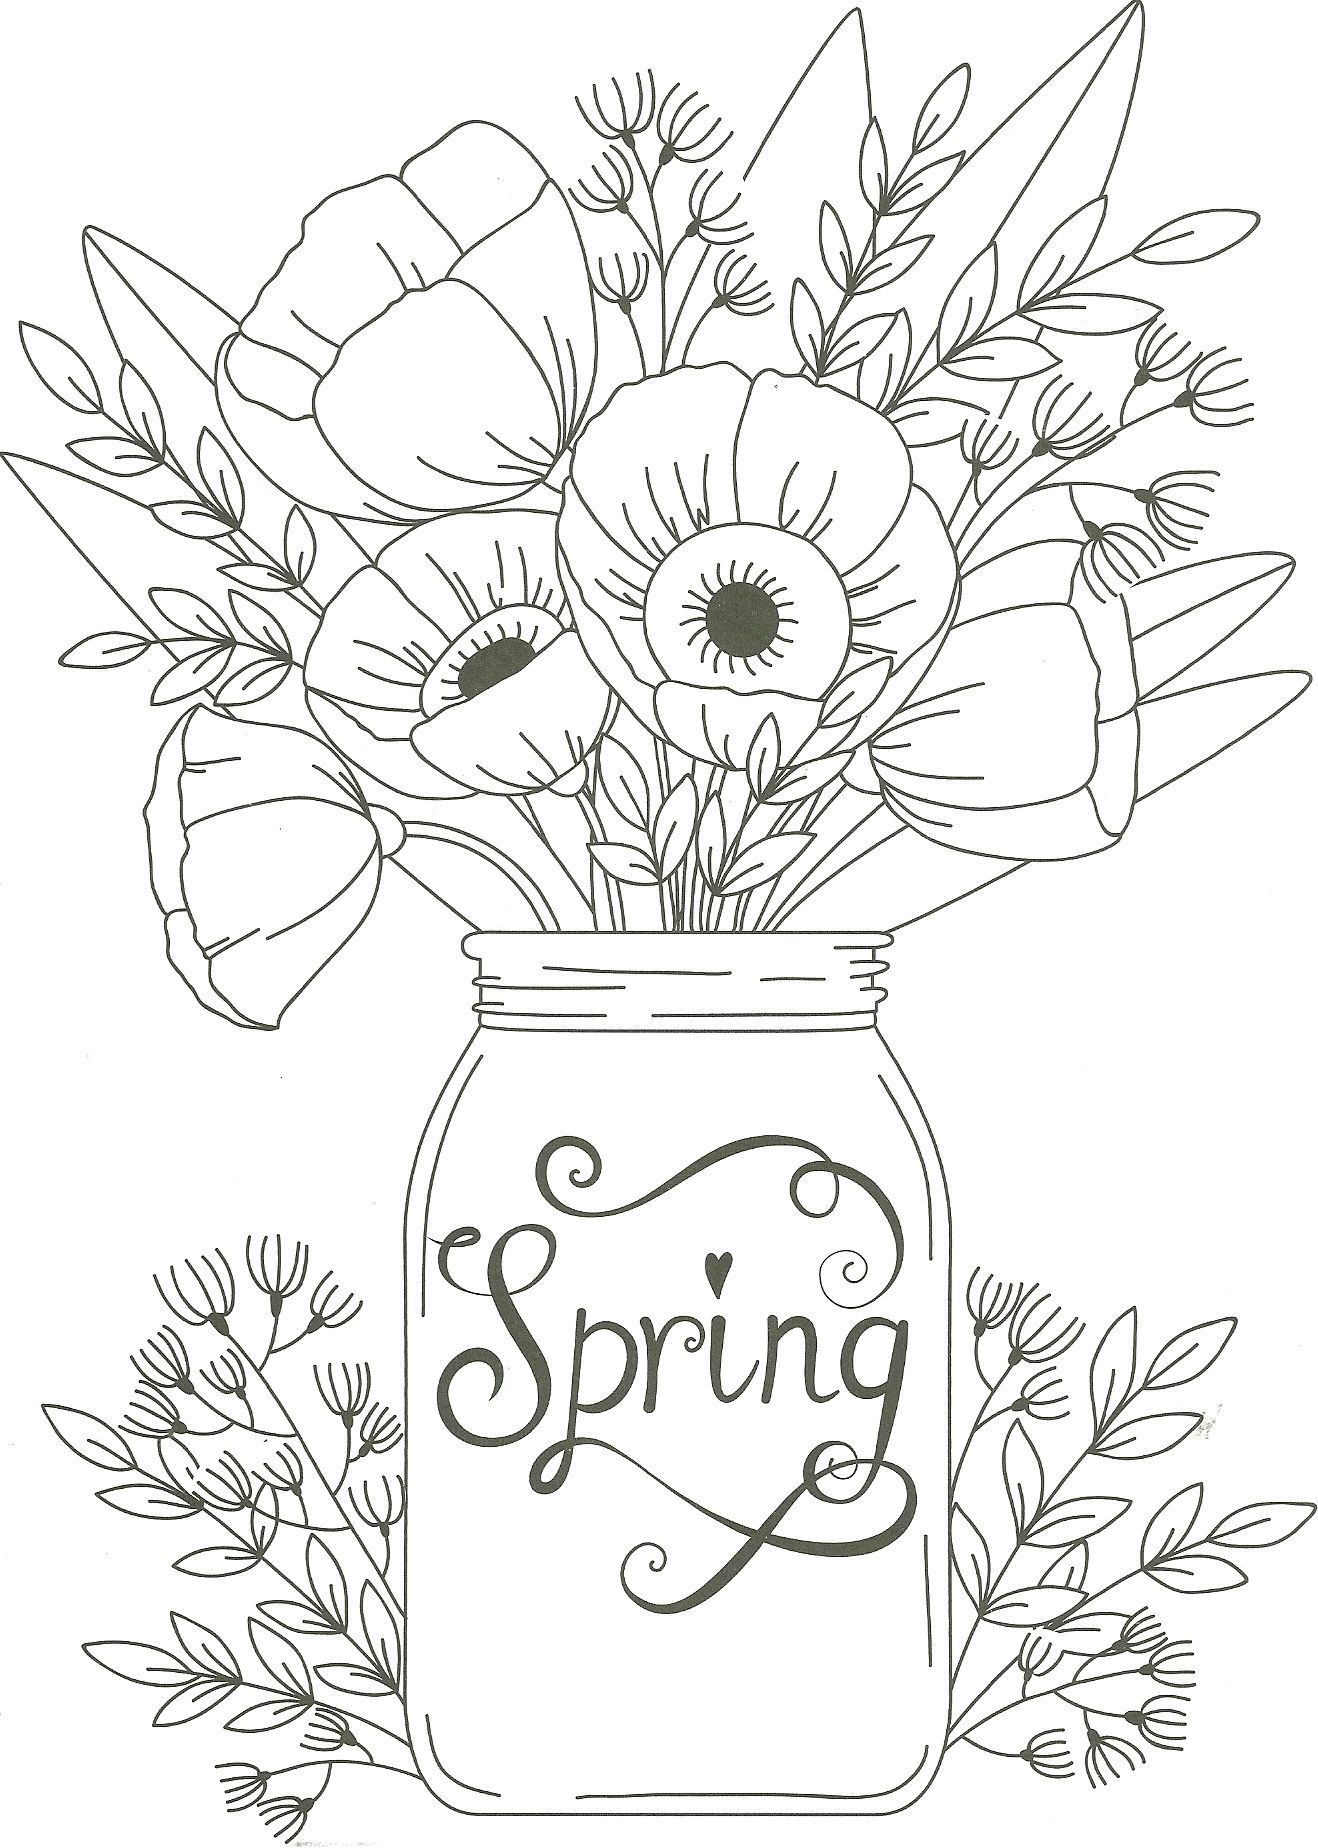 spring mason jar floral coloring page | my coloring pages ...